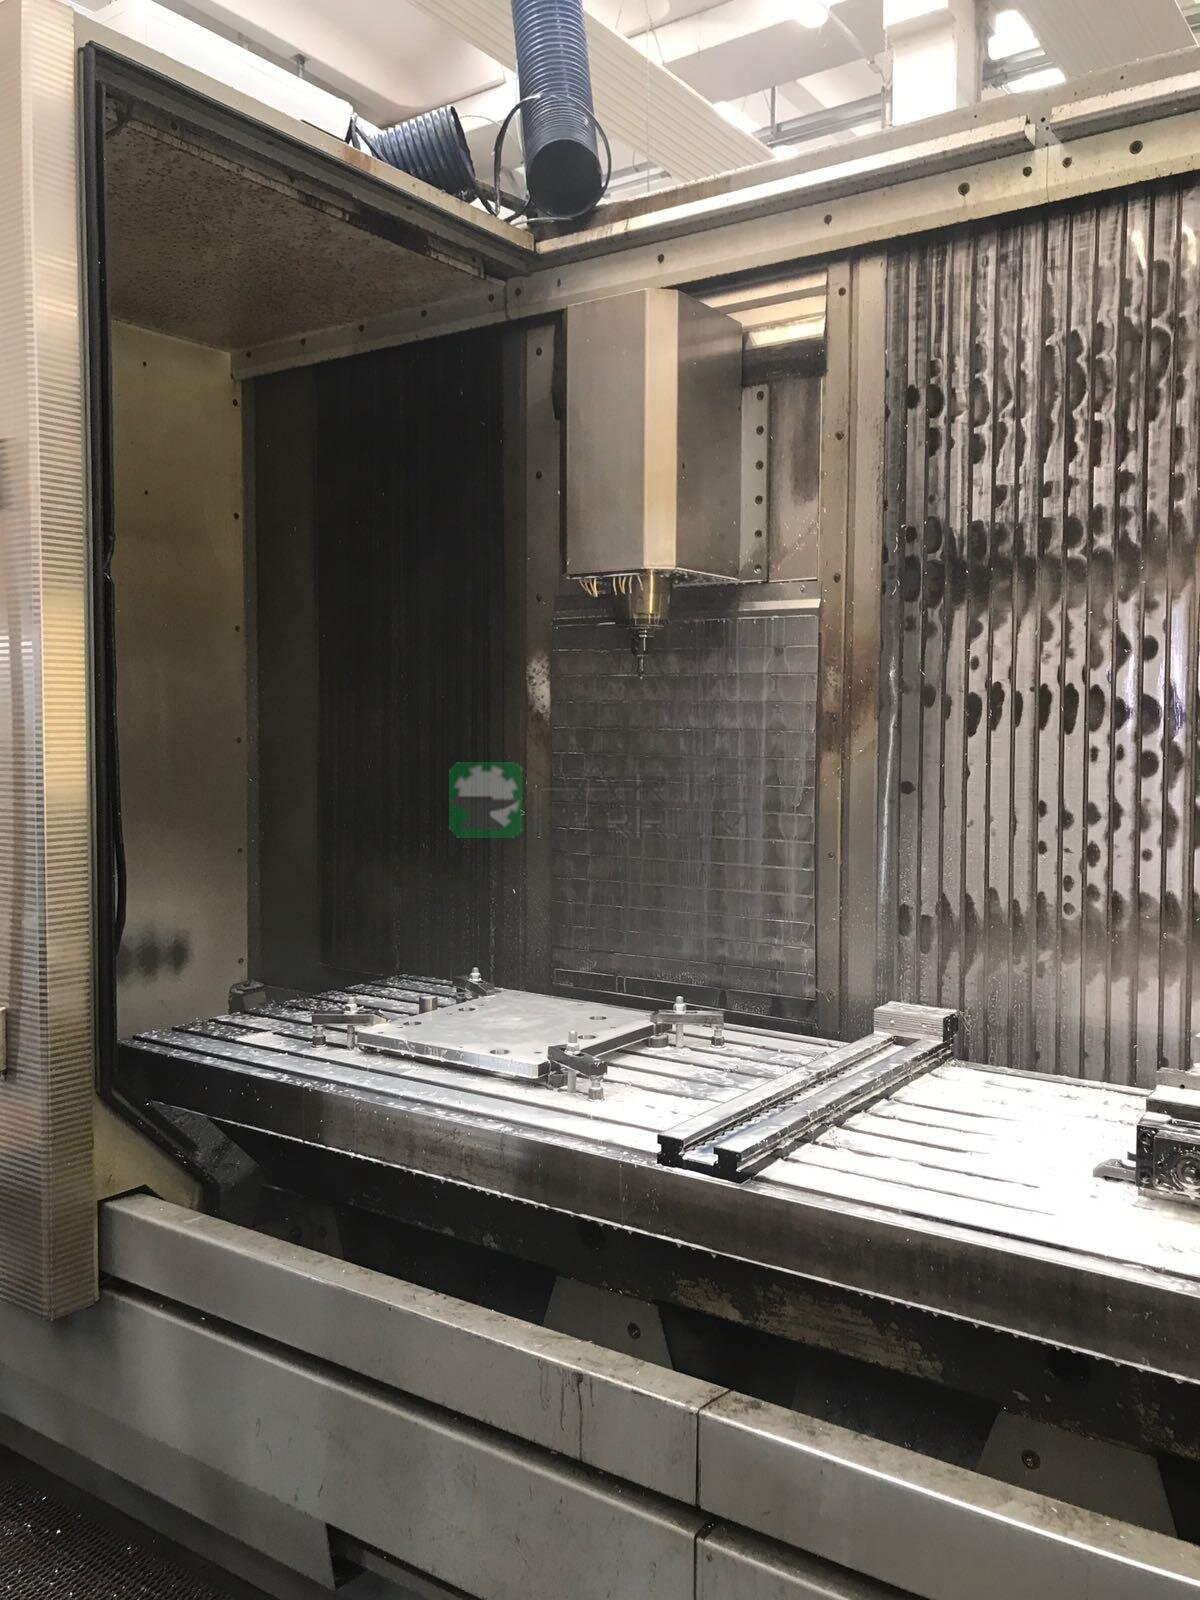 DMG DMF 250 LINEAR center (13)